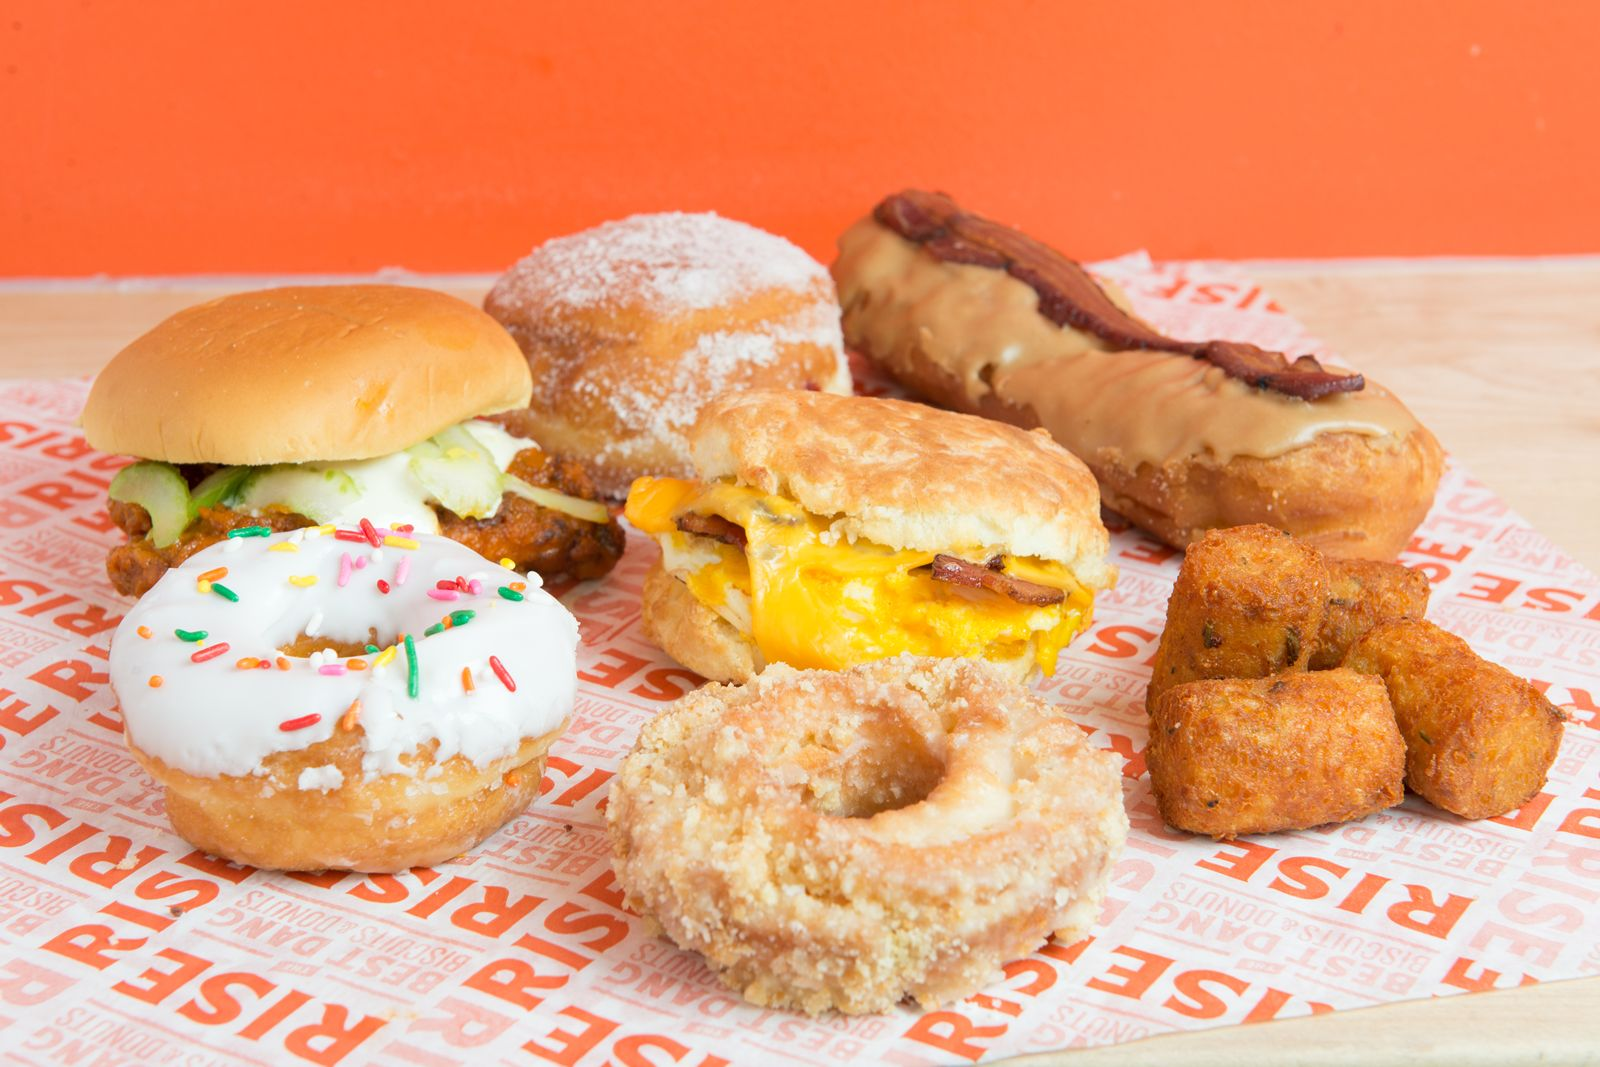 Rise Biscuits Donuts, known for its crave-worthy comfort food made with premium ingredients, has signed a multi-unit franchise deal to open five stores over the next five years in the greater Kansas City area.